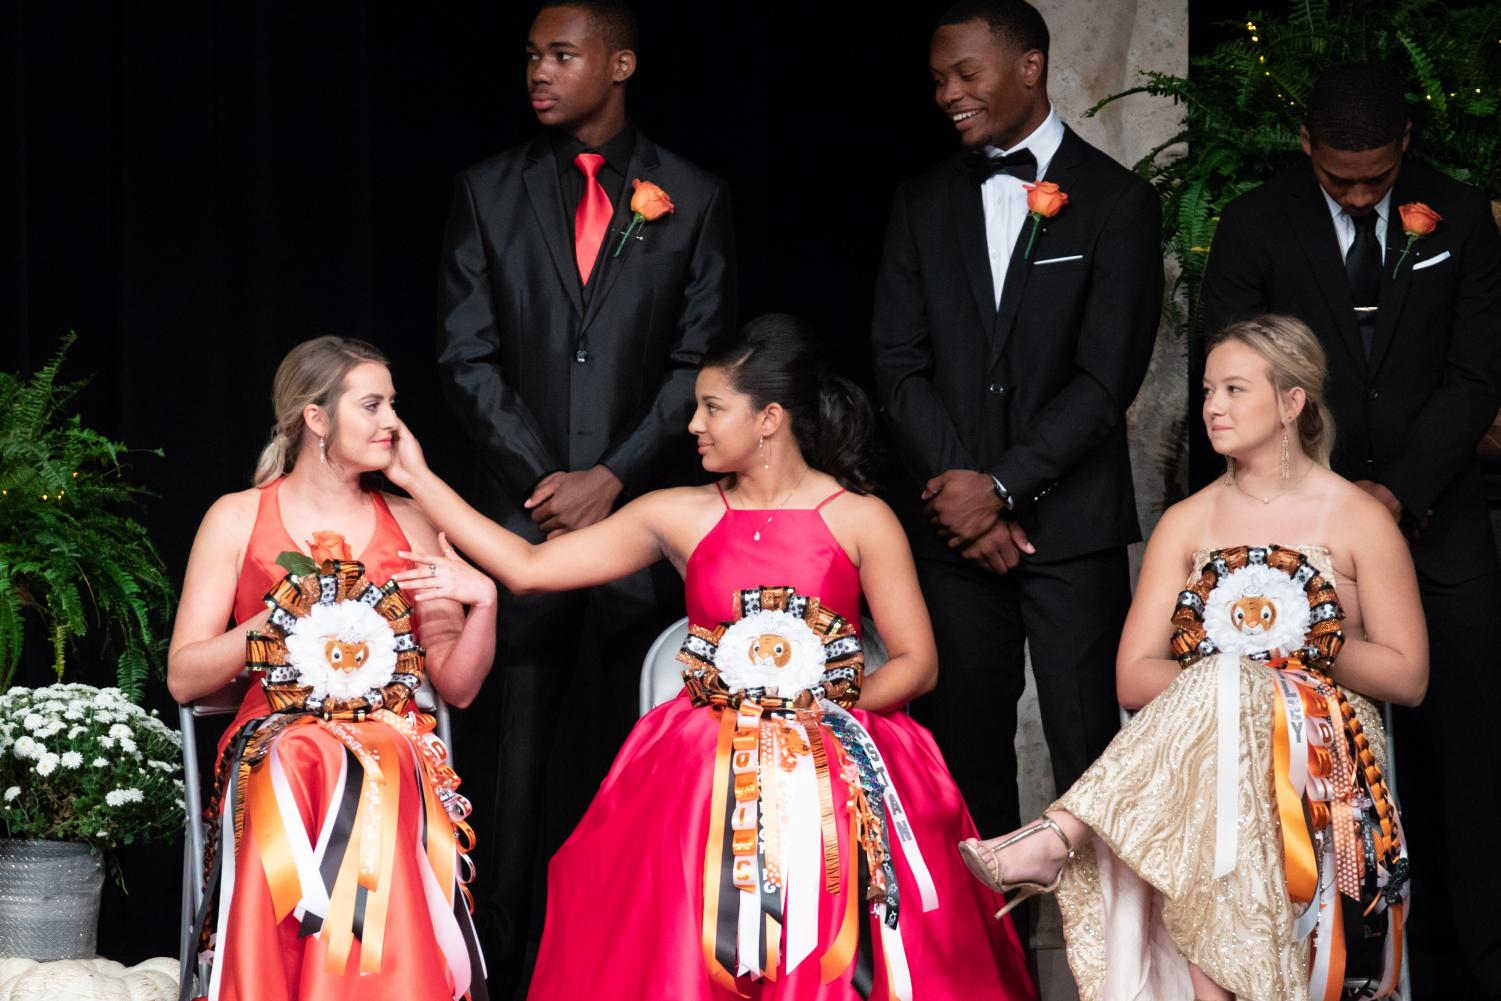 Senior Kearstan Williams wipes a tear away from fellow maid senior Allison Yancey during emotional moment shared on stage.